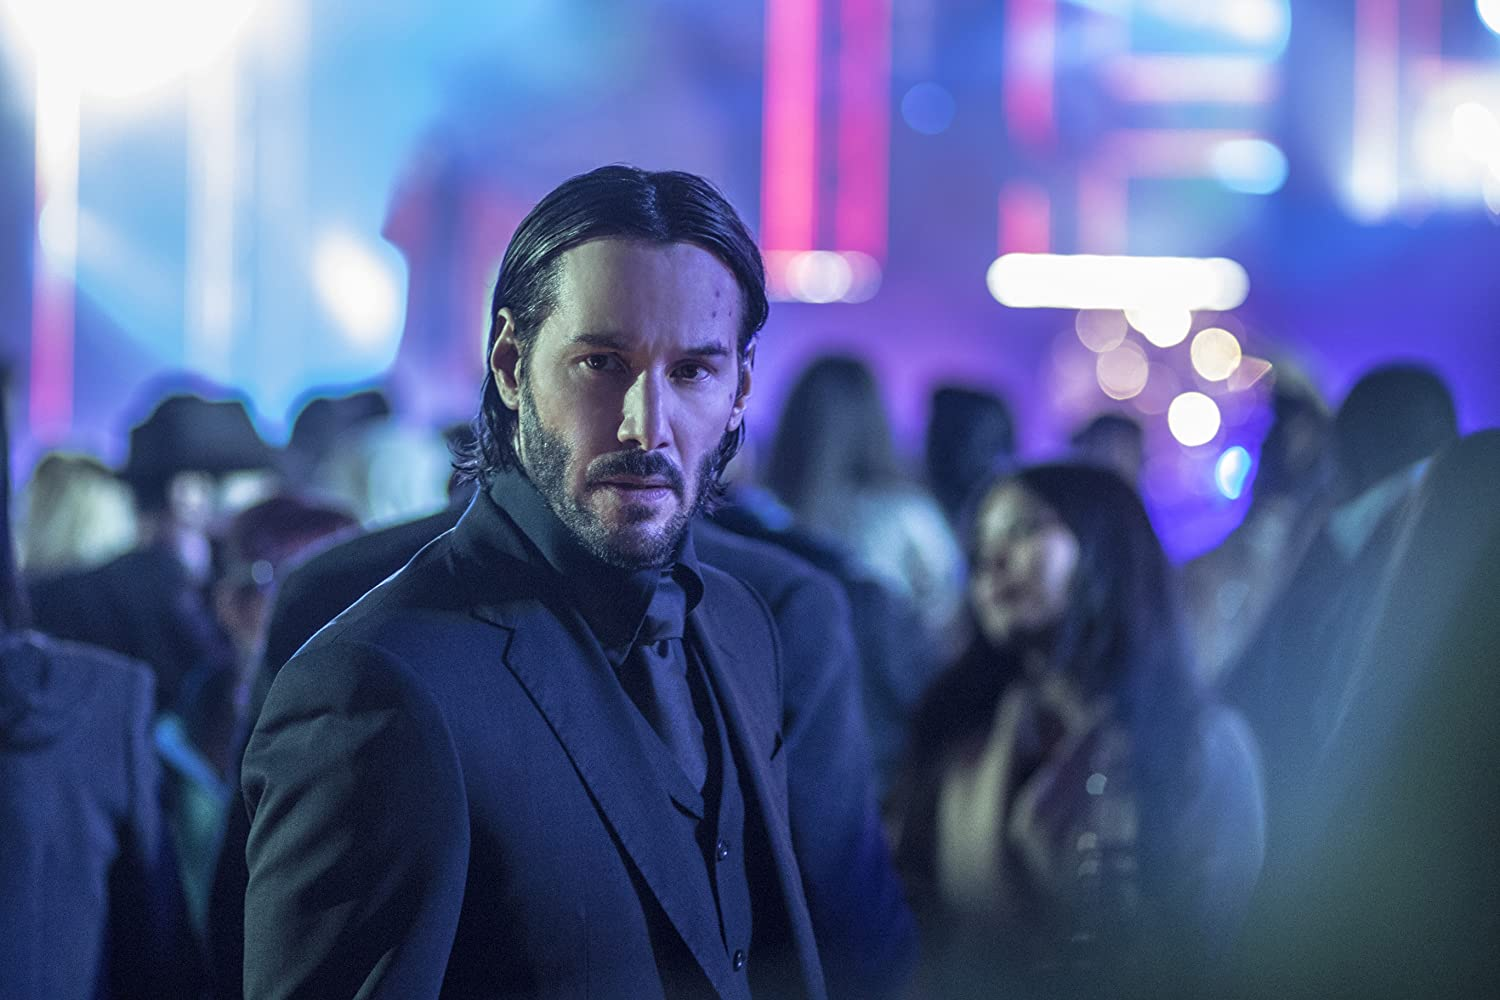 Keanu Reeves in John Wick: Chapter 2 (2017)